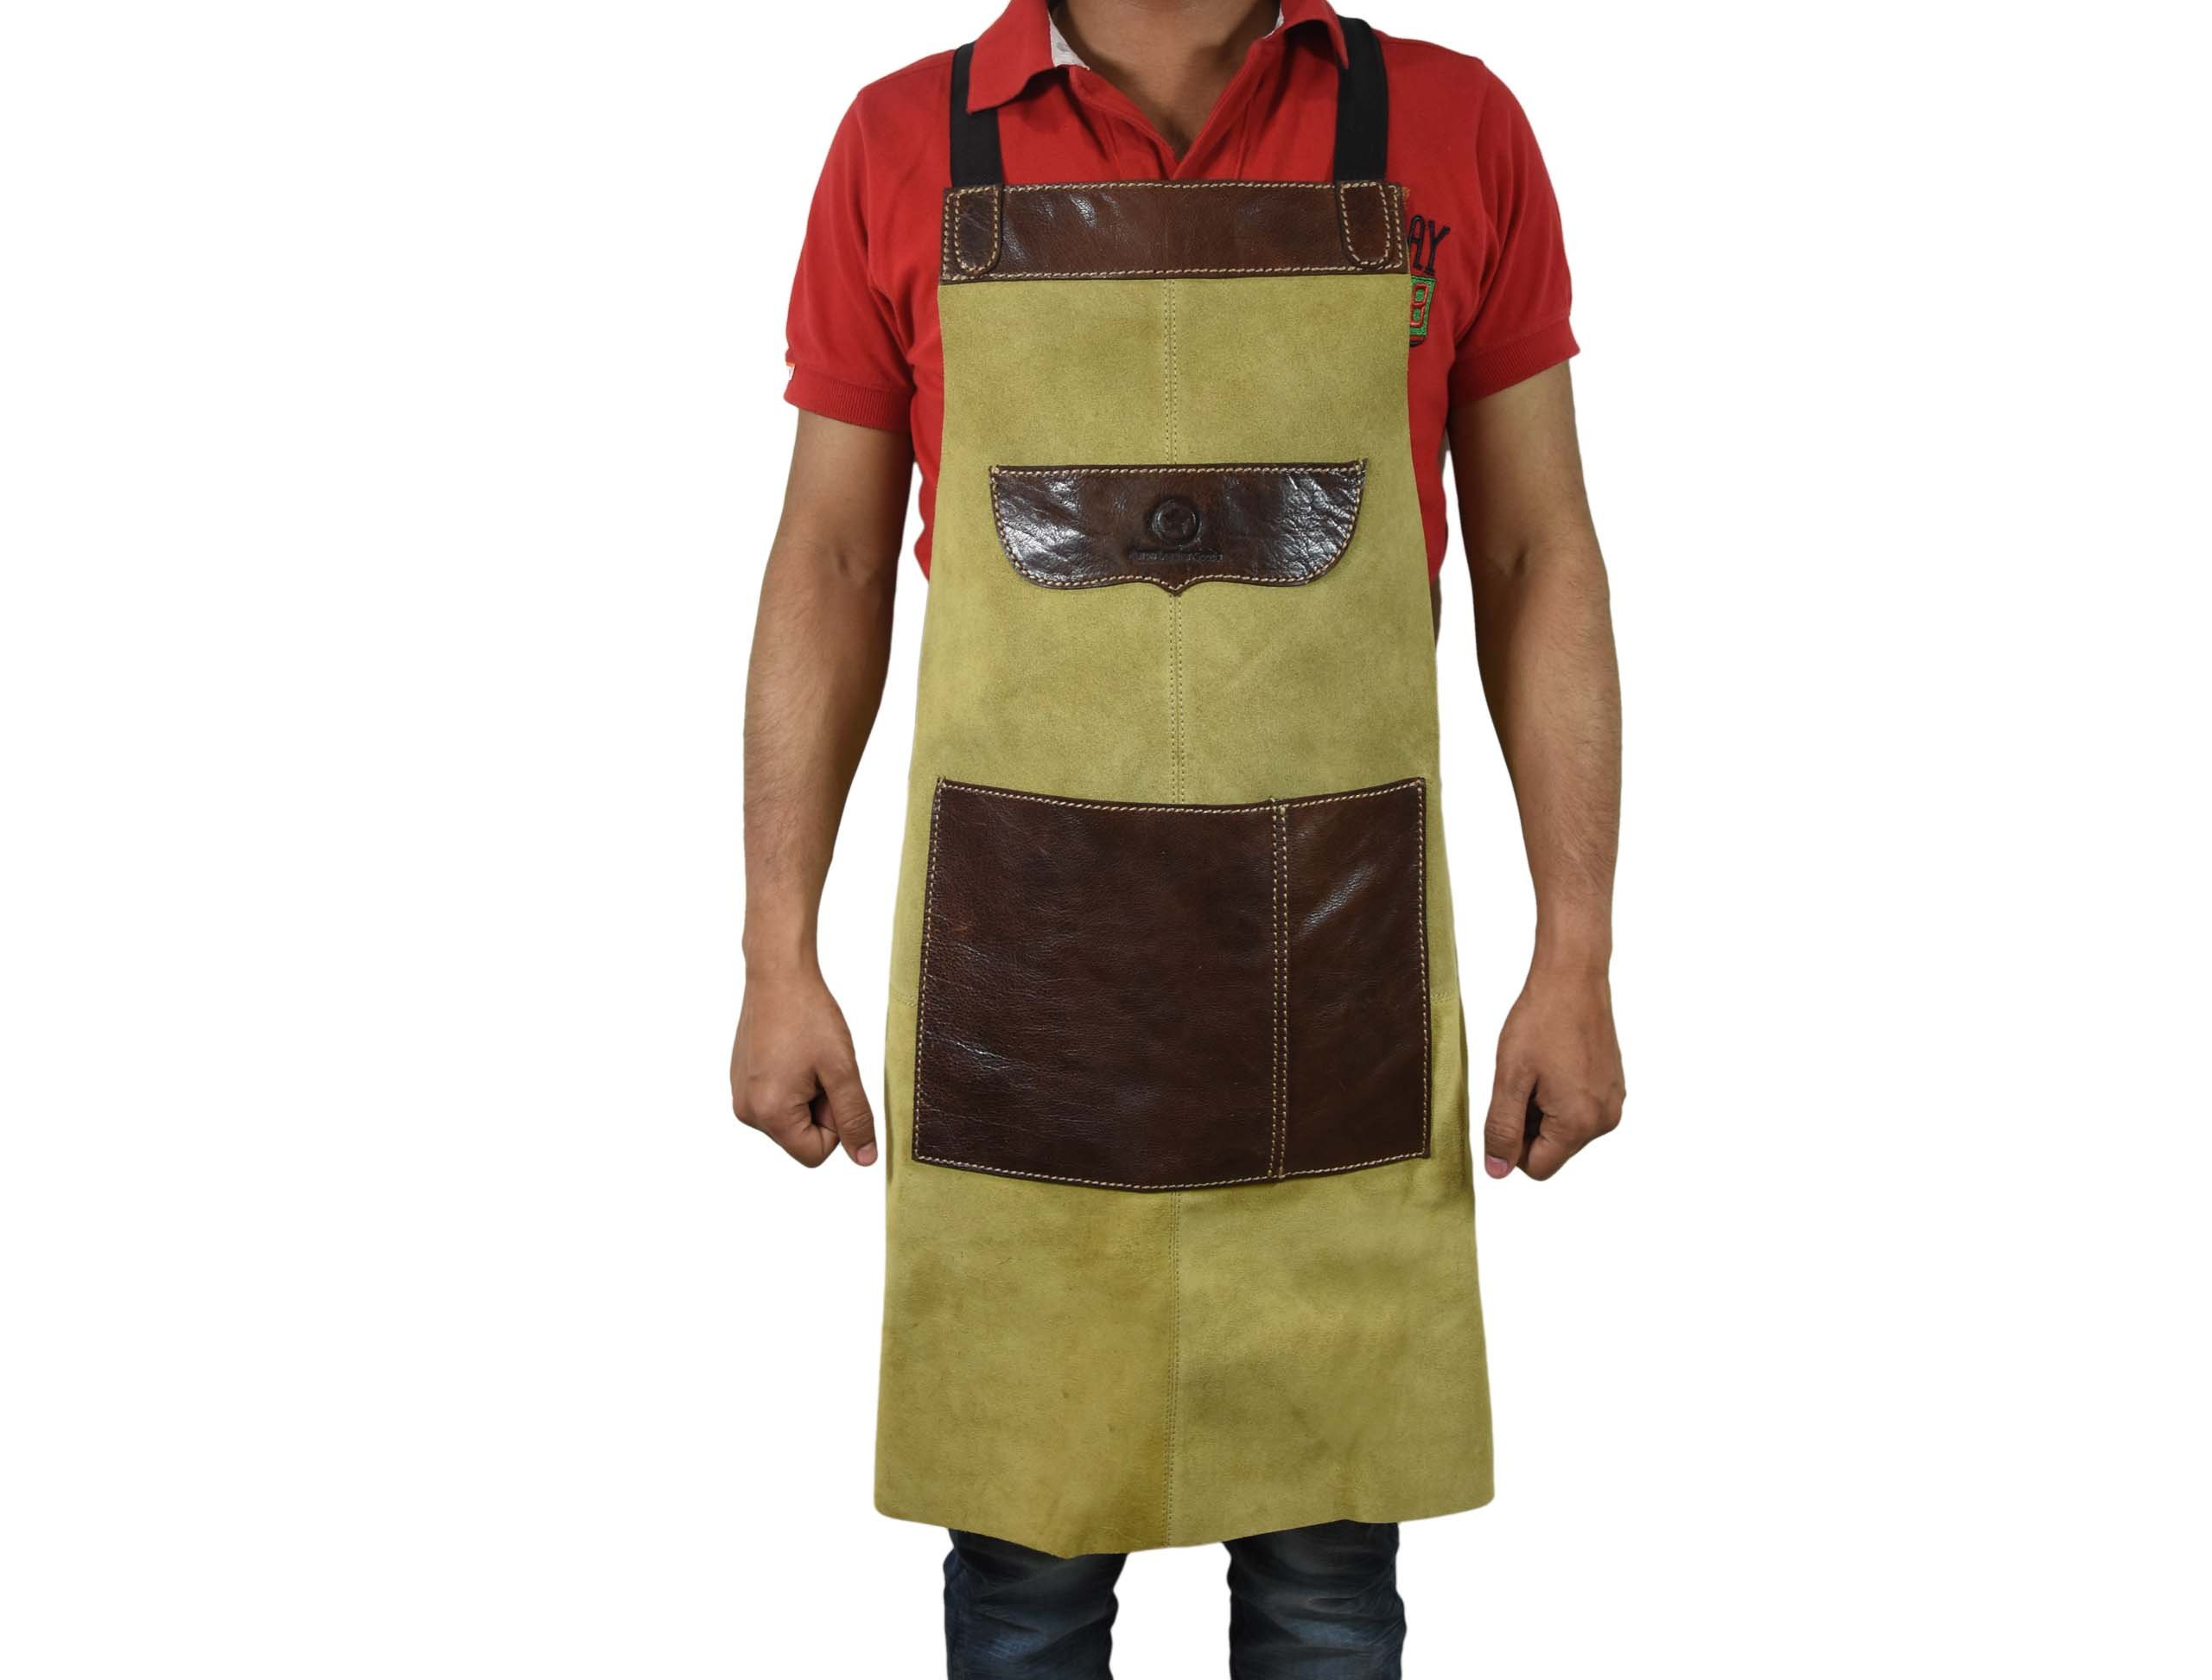 Aaron Leather One Size Fits All Leather Utility Apron | Adjustable Cross-Back Straps | Multi-Use Shop Apron with Tool Pockets (Khaki)